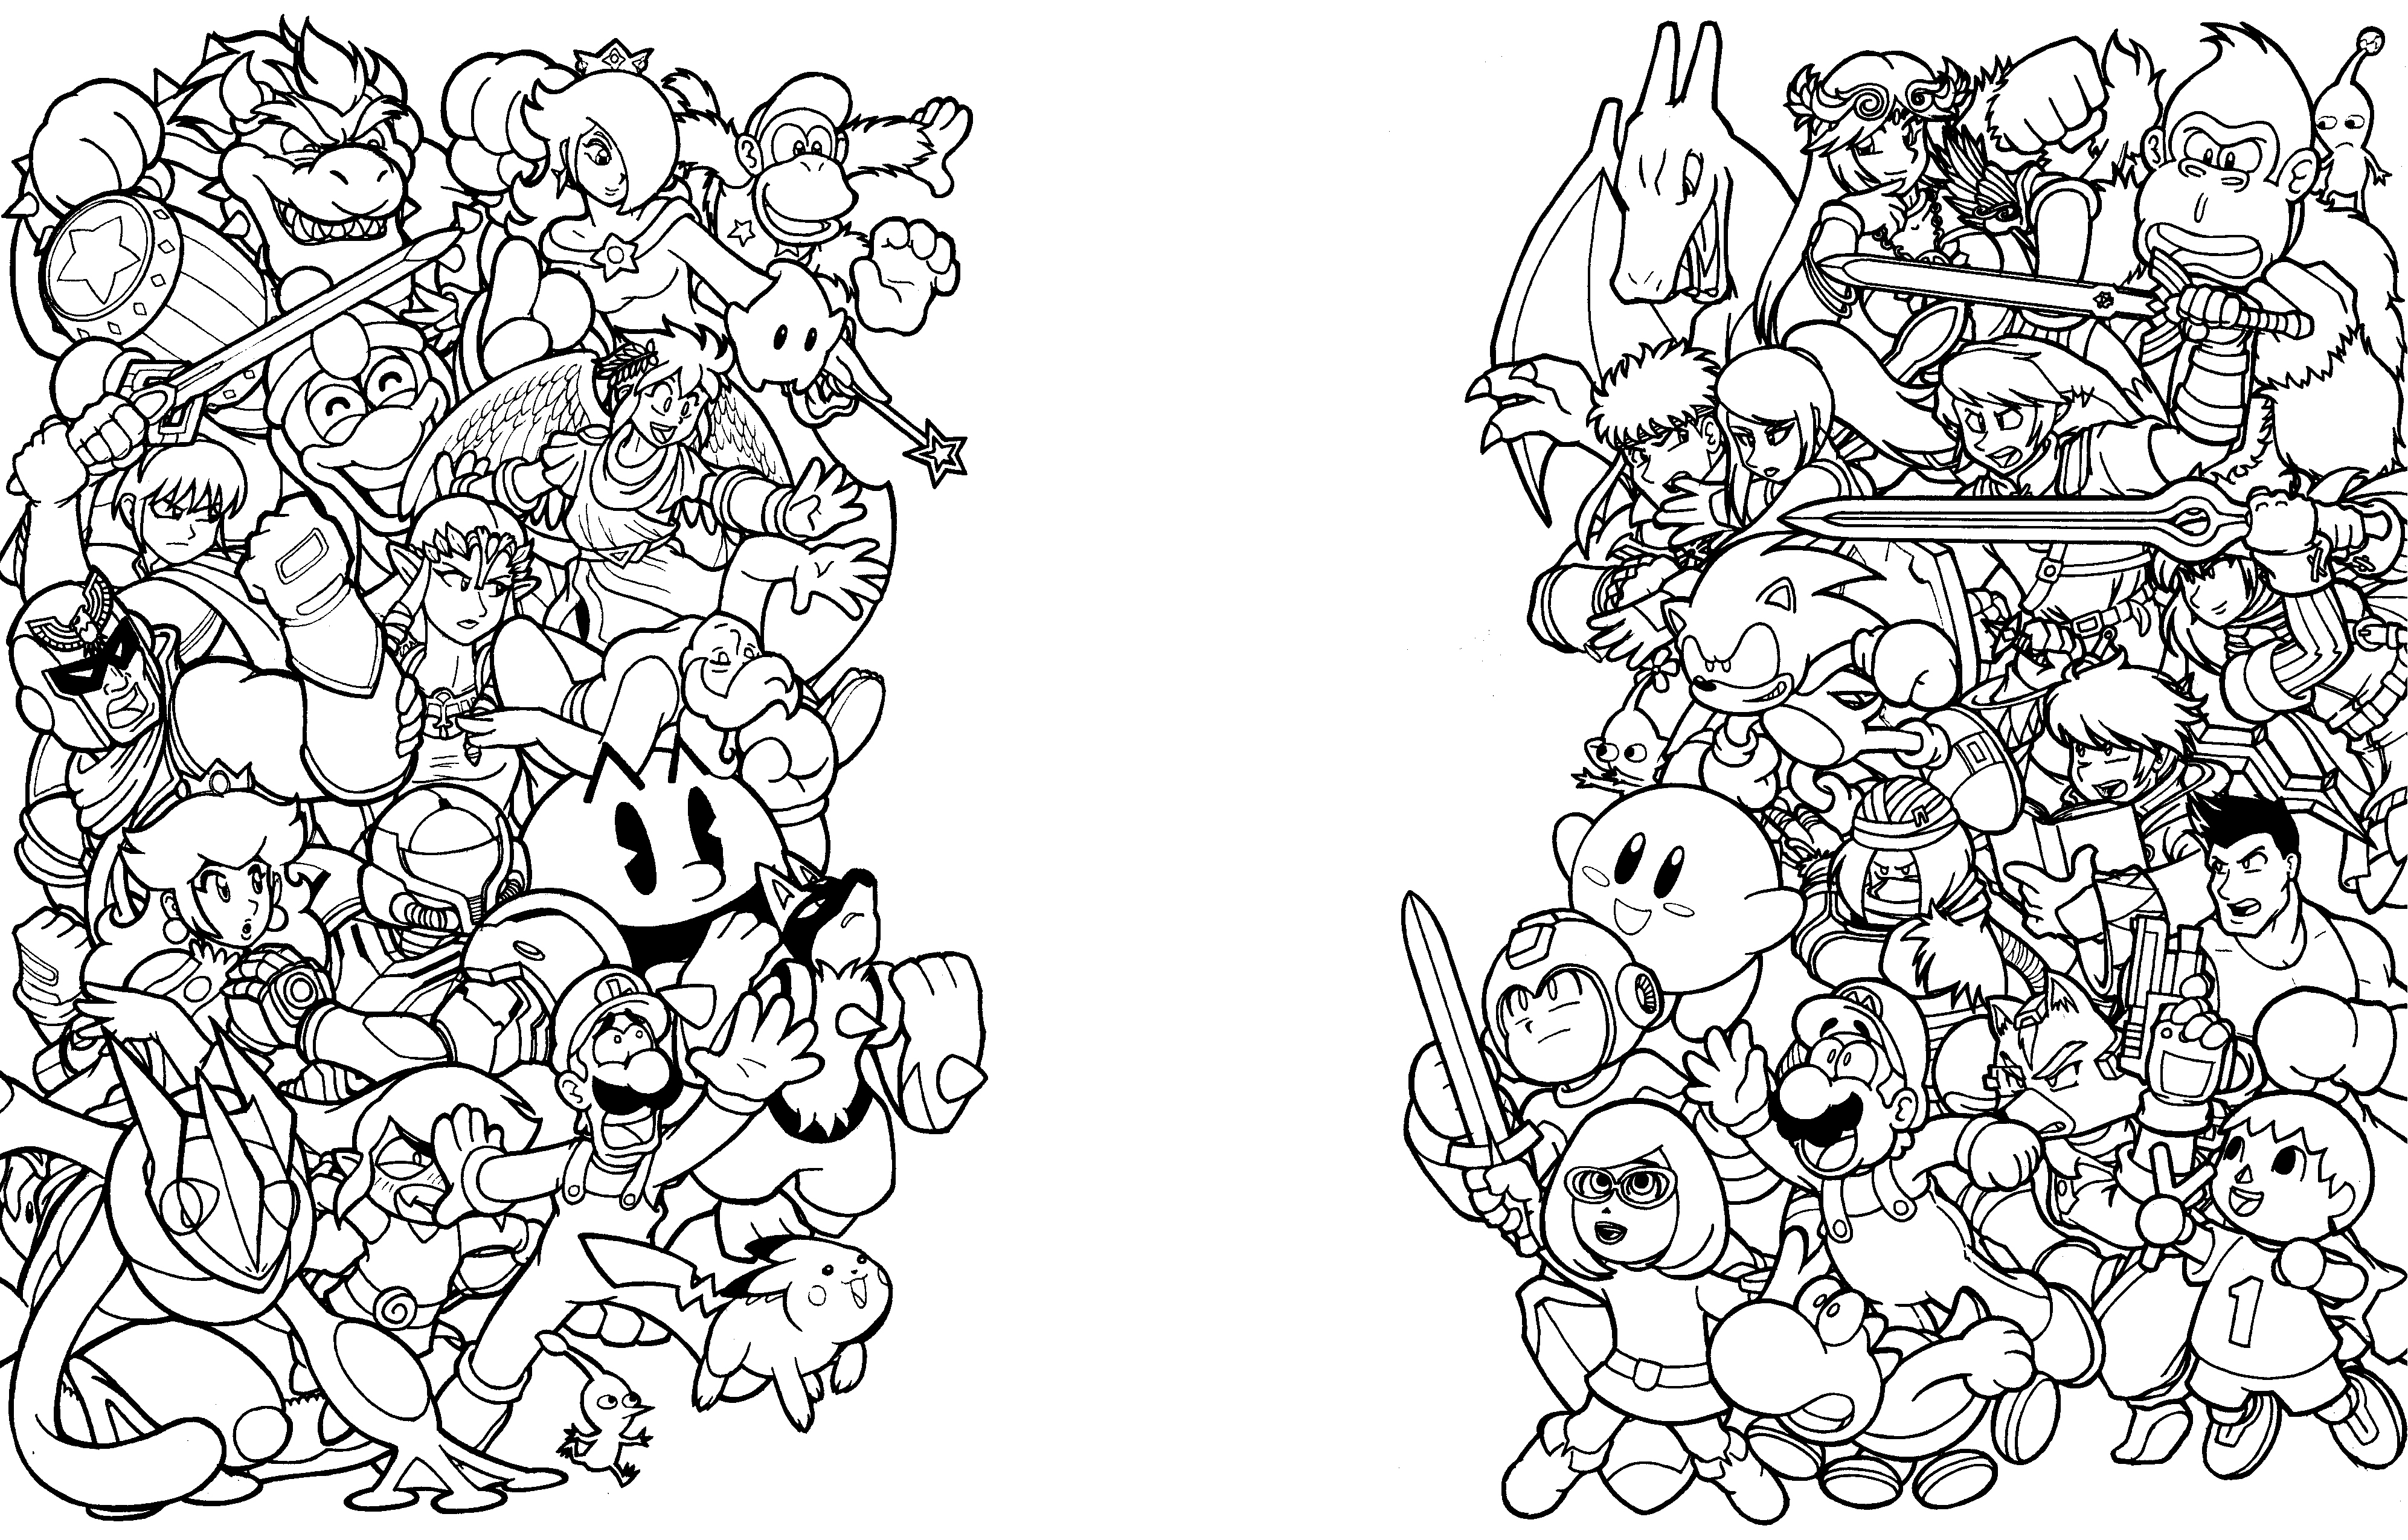 smash brothers wip nintendo force by thormeister on deviantart